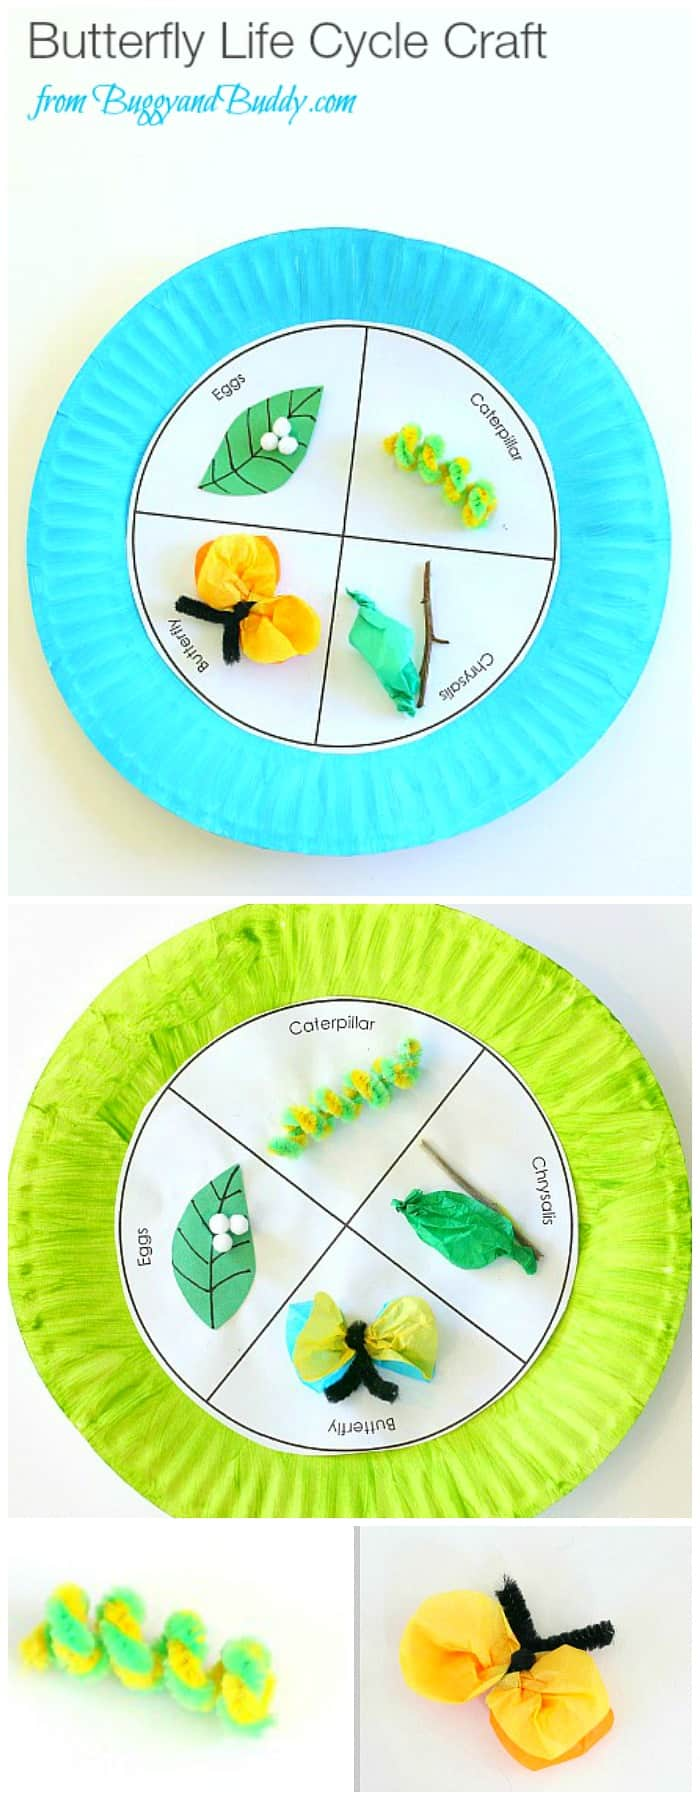 Paper Plate Butterfly Life Cycle Craft for Kids (with FREE printable template)- Fun spring and science activity for kids! ~ BuggyandBuddy.com